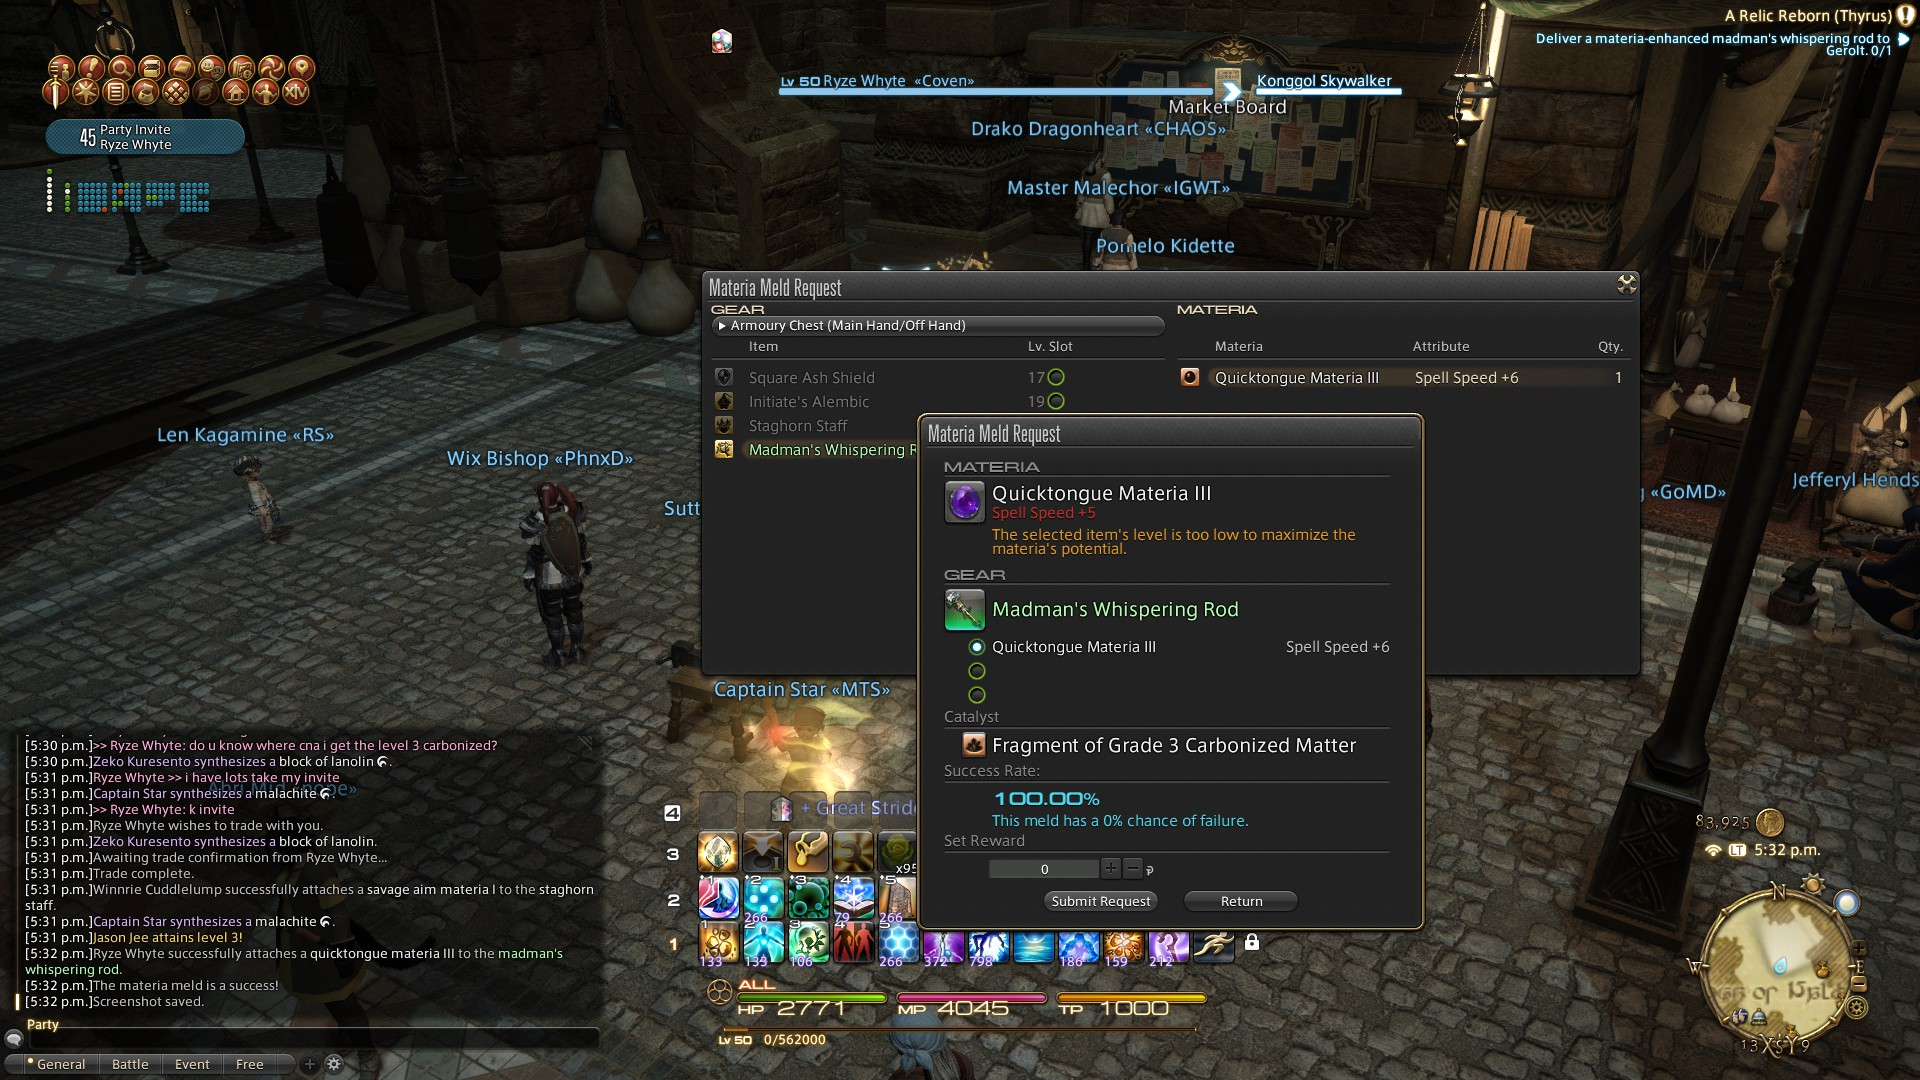 Final Fantasy XIV Guide - Acquiring the Relic Weapons